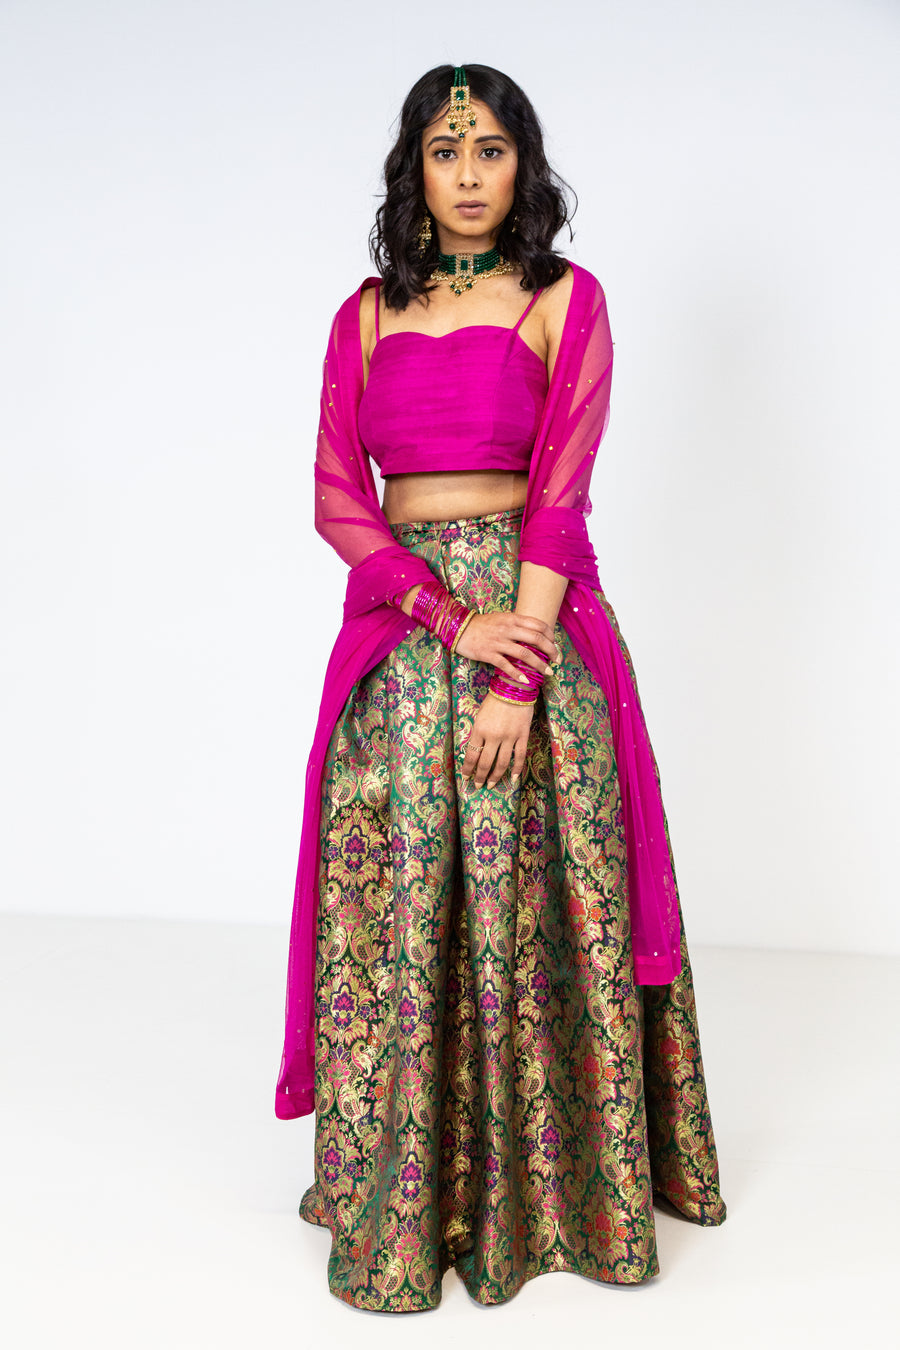 RAKSHA DARK PINK SET - FULL